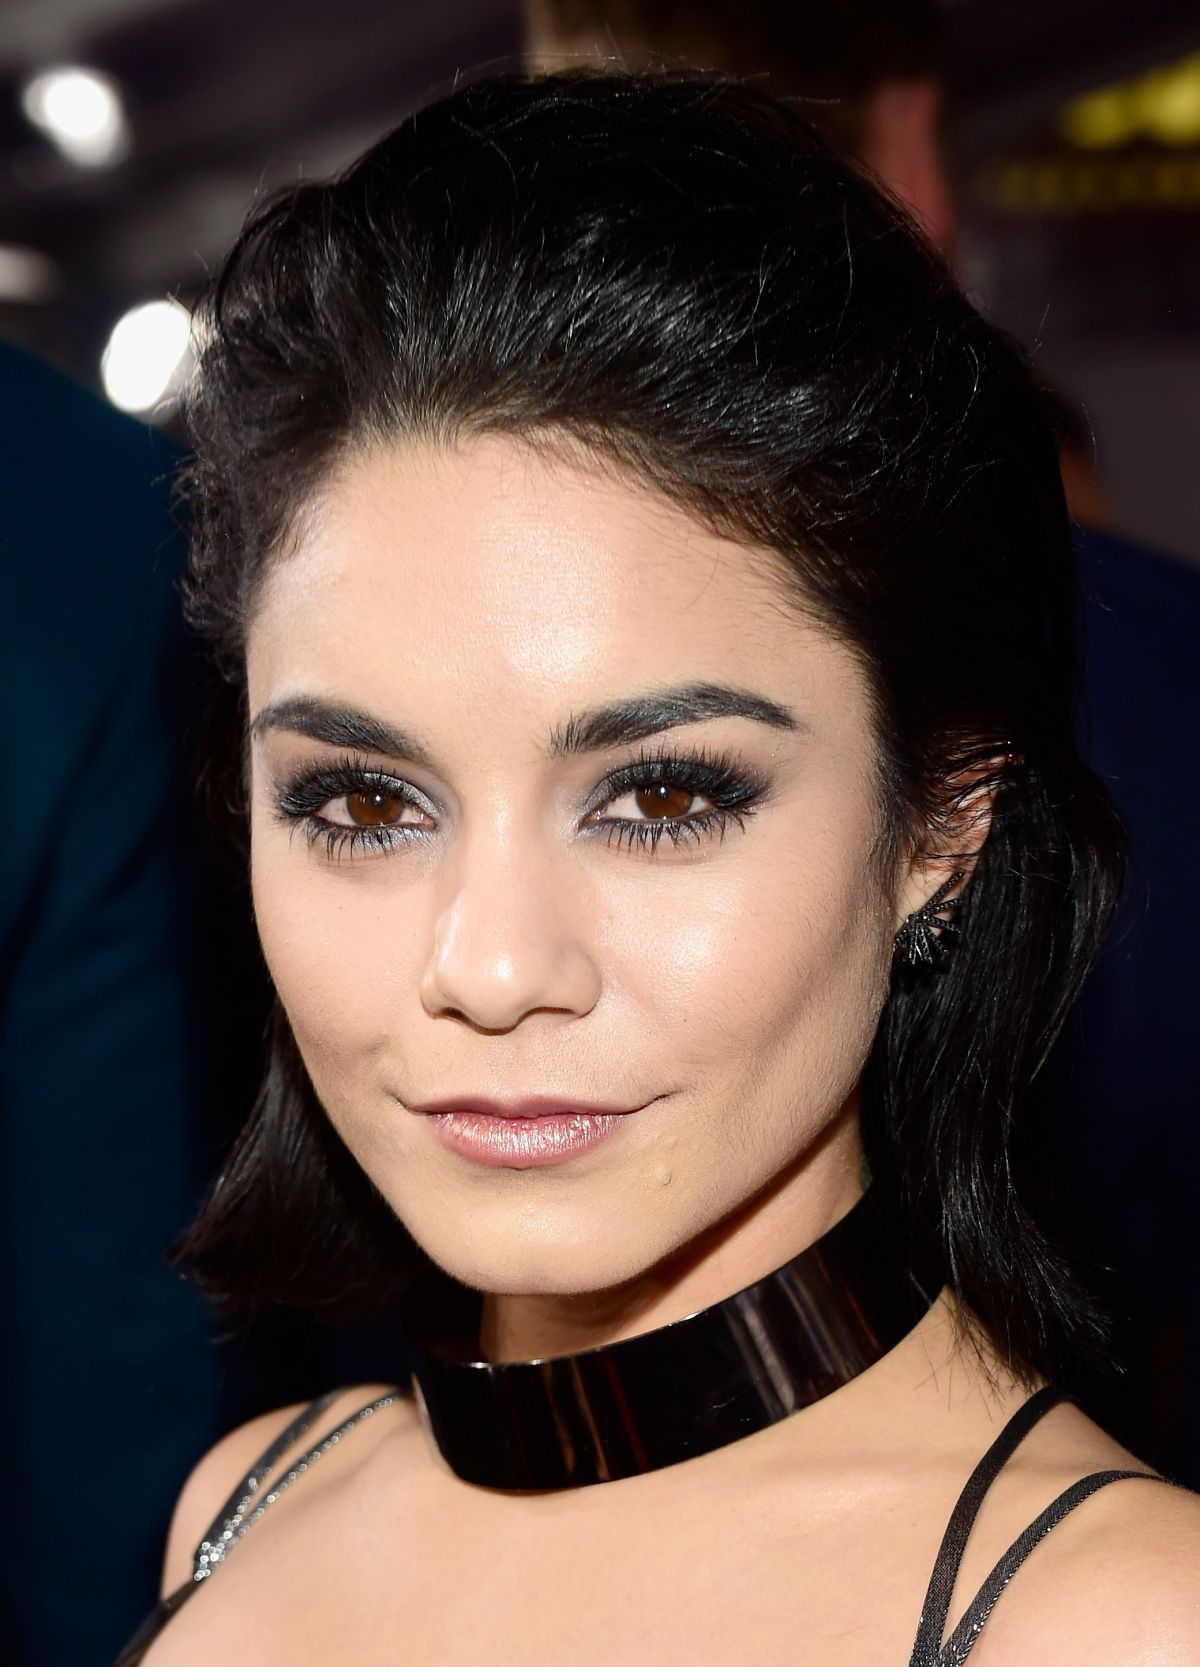 The 29-year old daughter of father Greg Hudgens and mother Gina Guangco Hudgens, 155 cm tall Vanessa Hudgens in 2018 photo